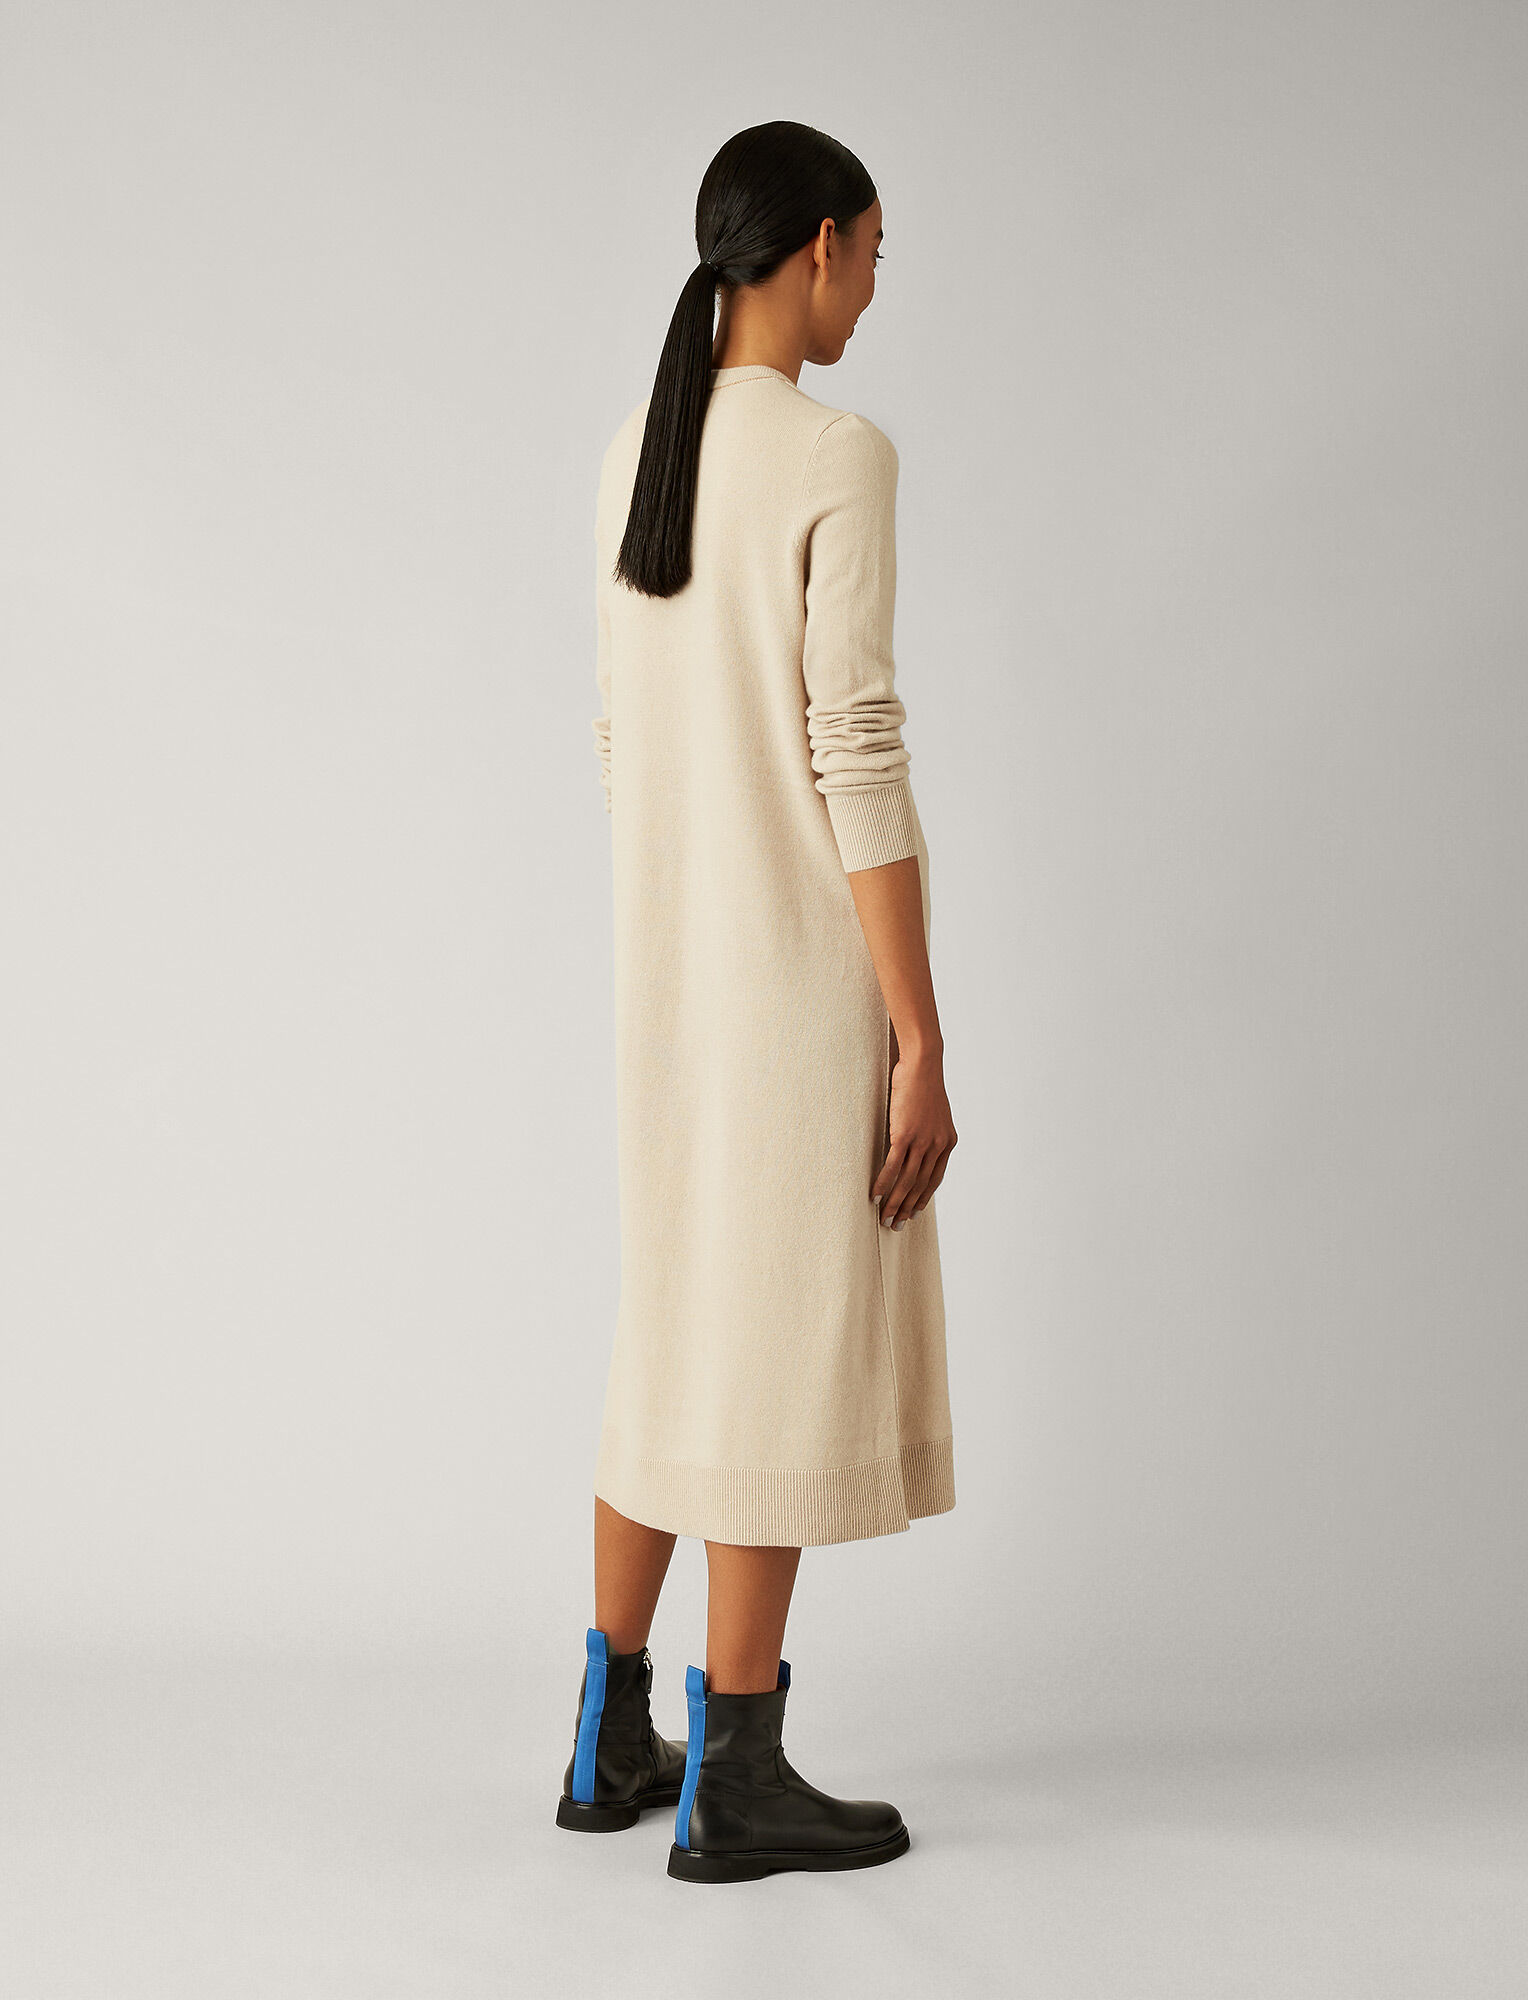 Joseph, Tina Mongolian Cashmere Dress, in FAWN